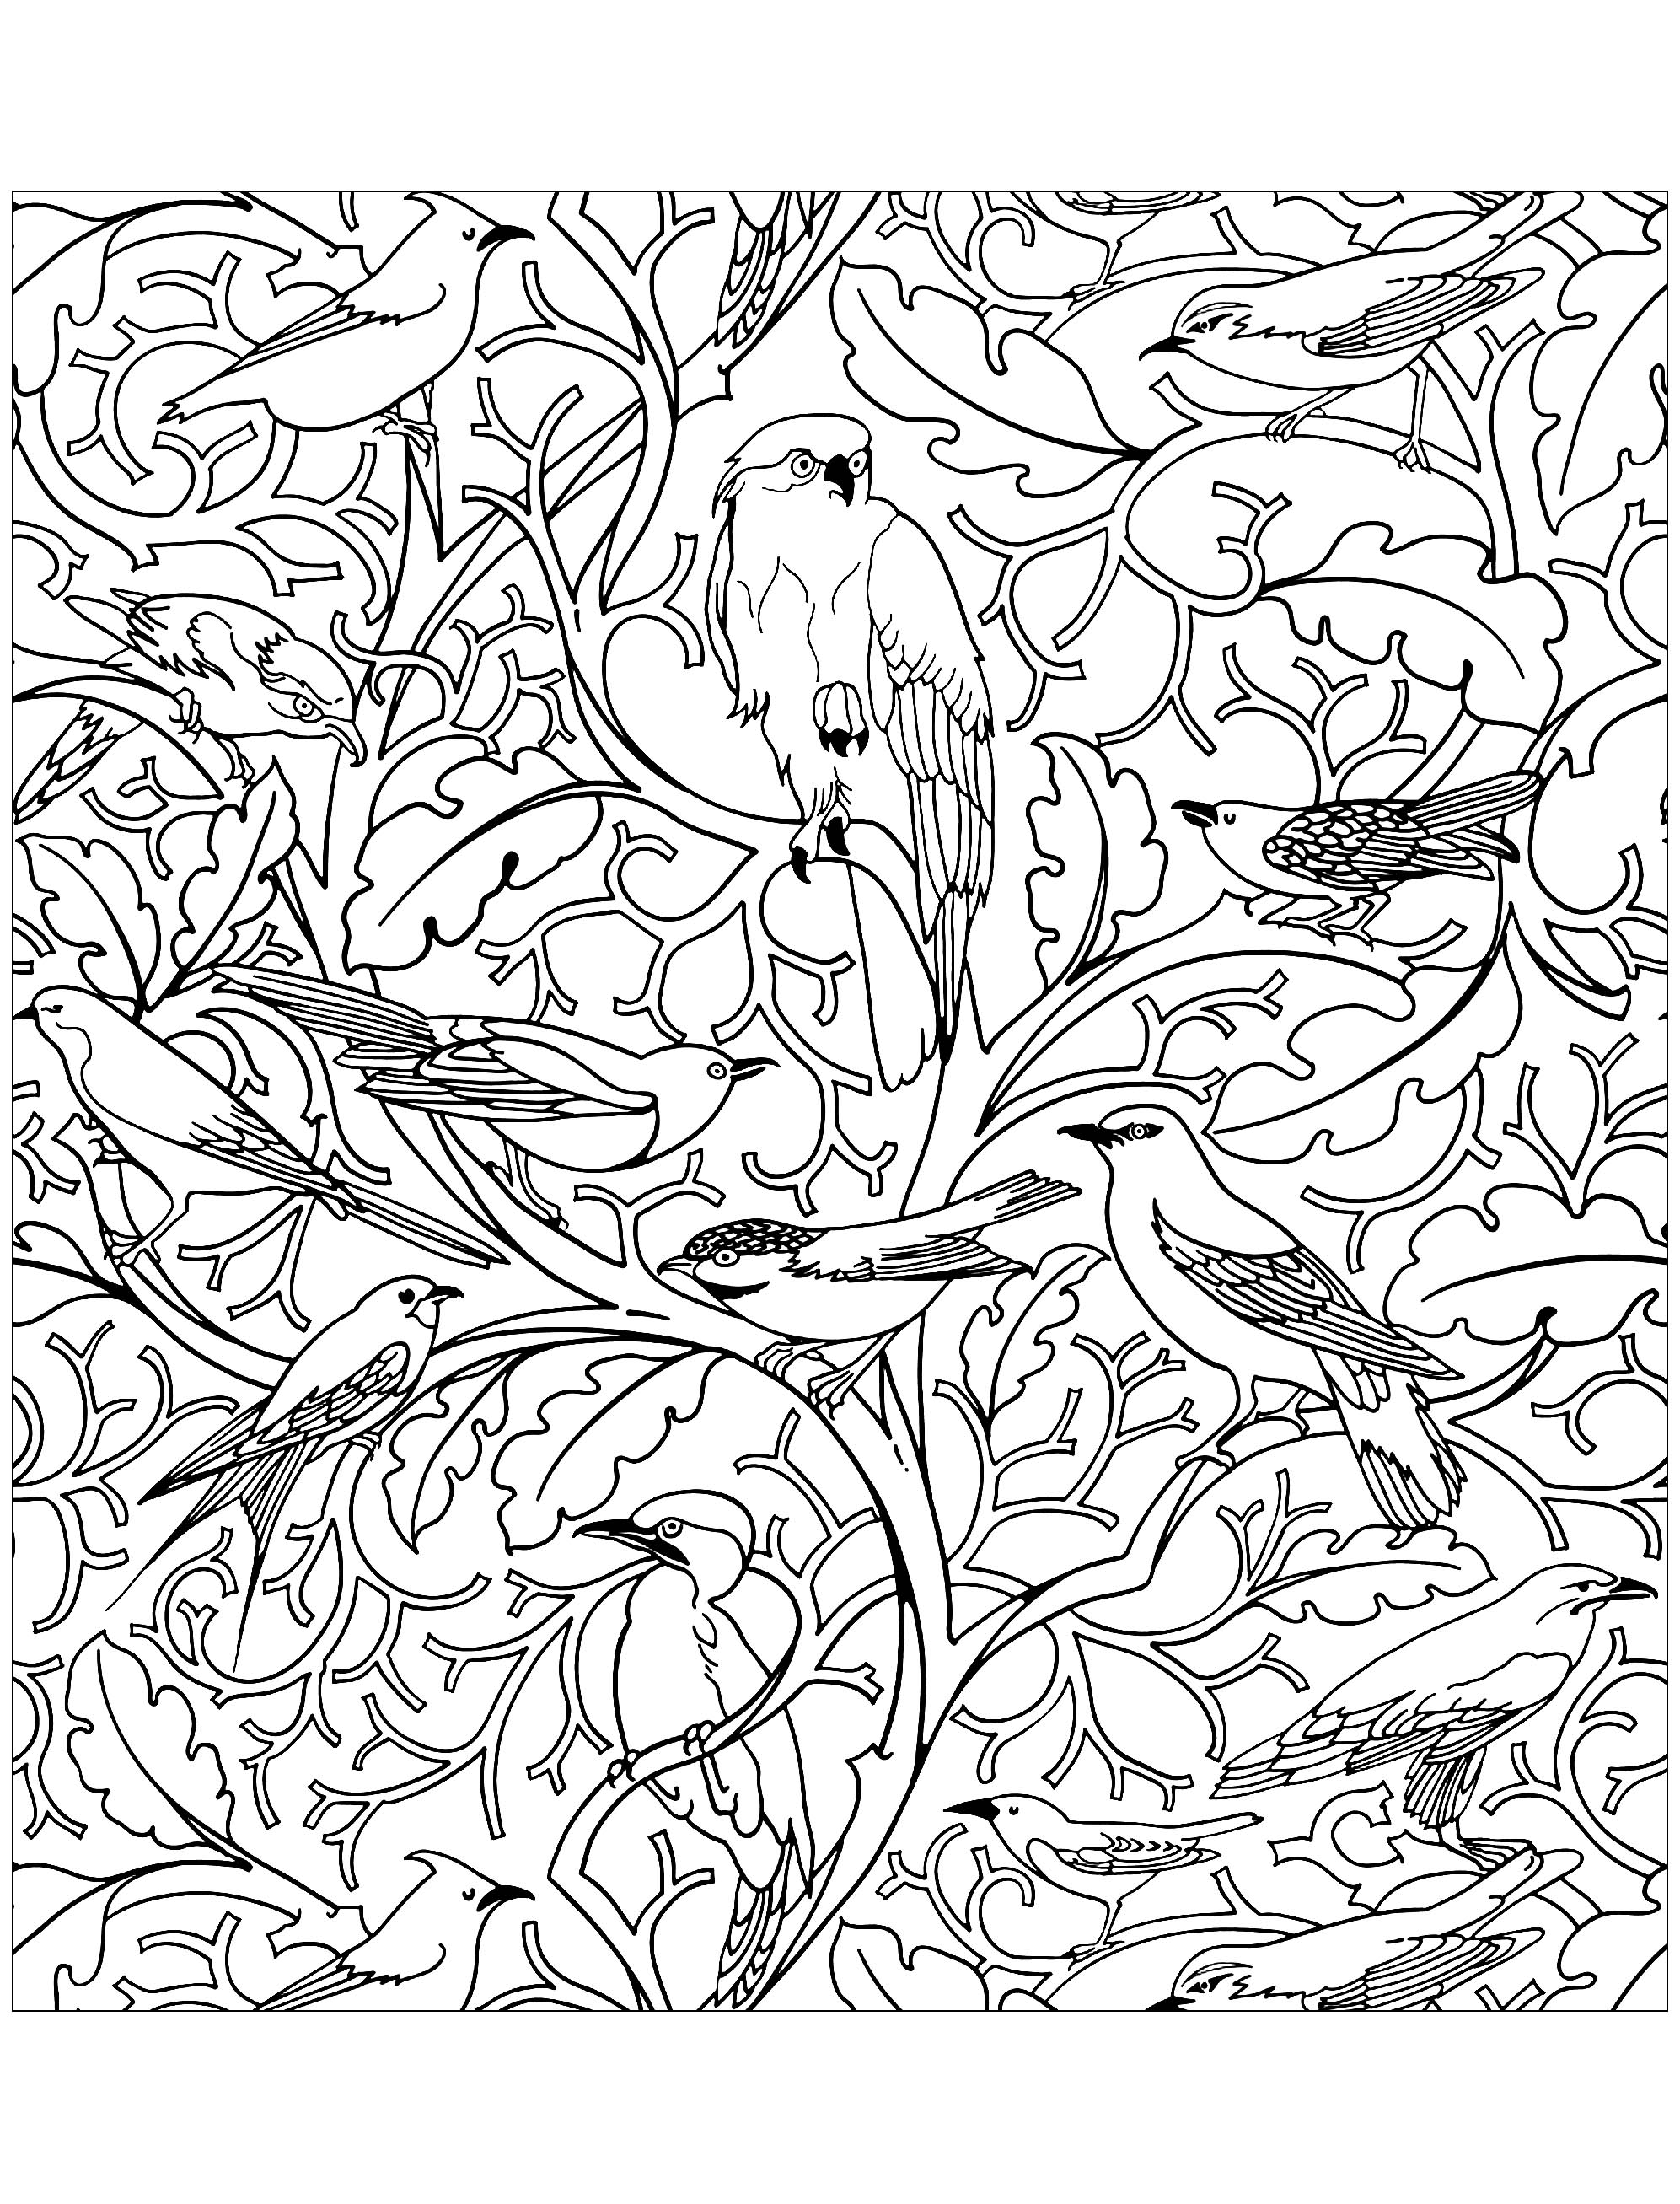 Coloring page inspired by a textile design (also used as wallpaper) : Pop Mob Scene by CFA Voysey (England, 1929)